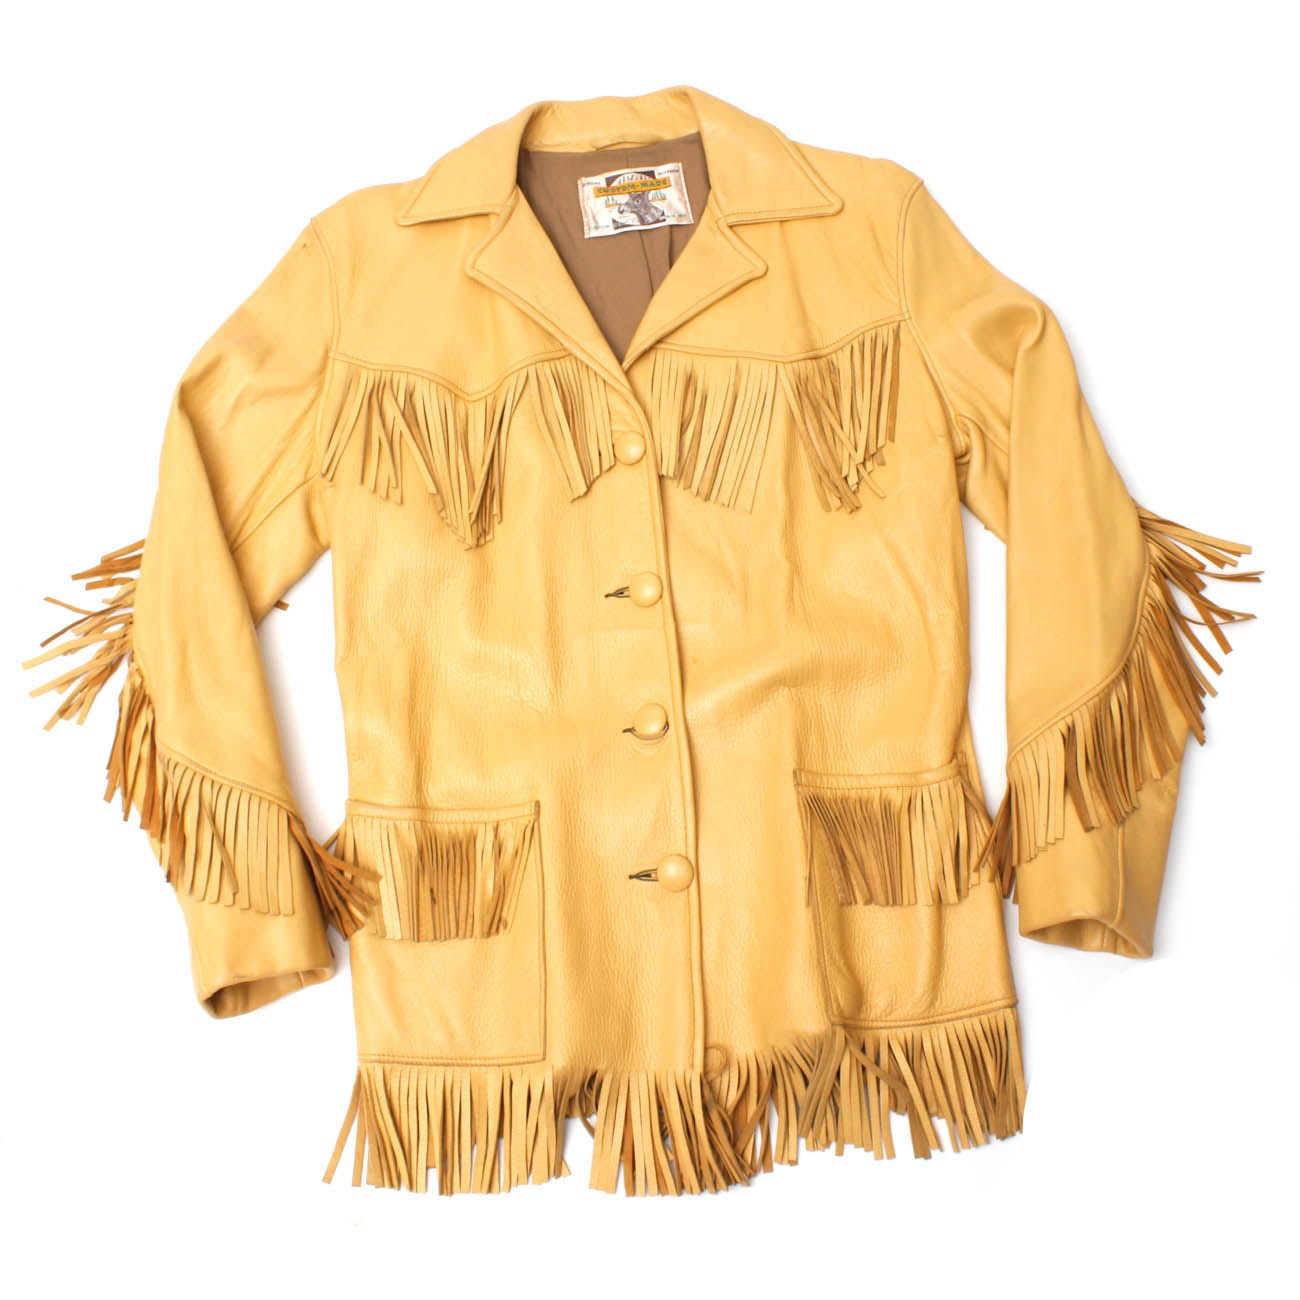 Women's Custom-Made Deer Skin Leather Fringe Jacket